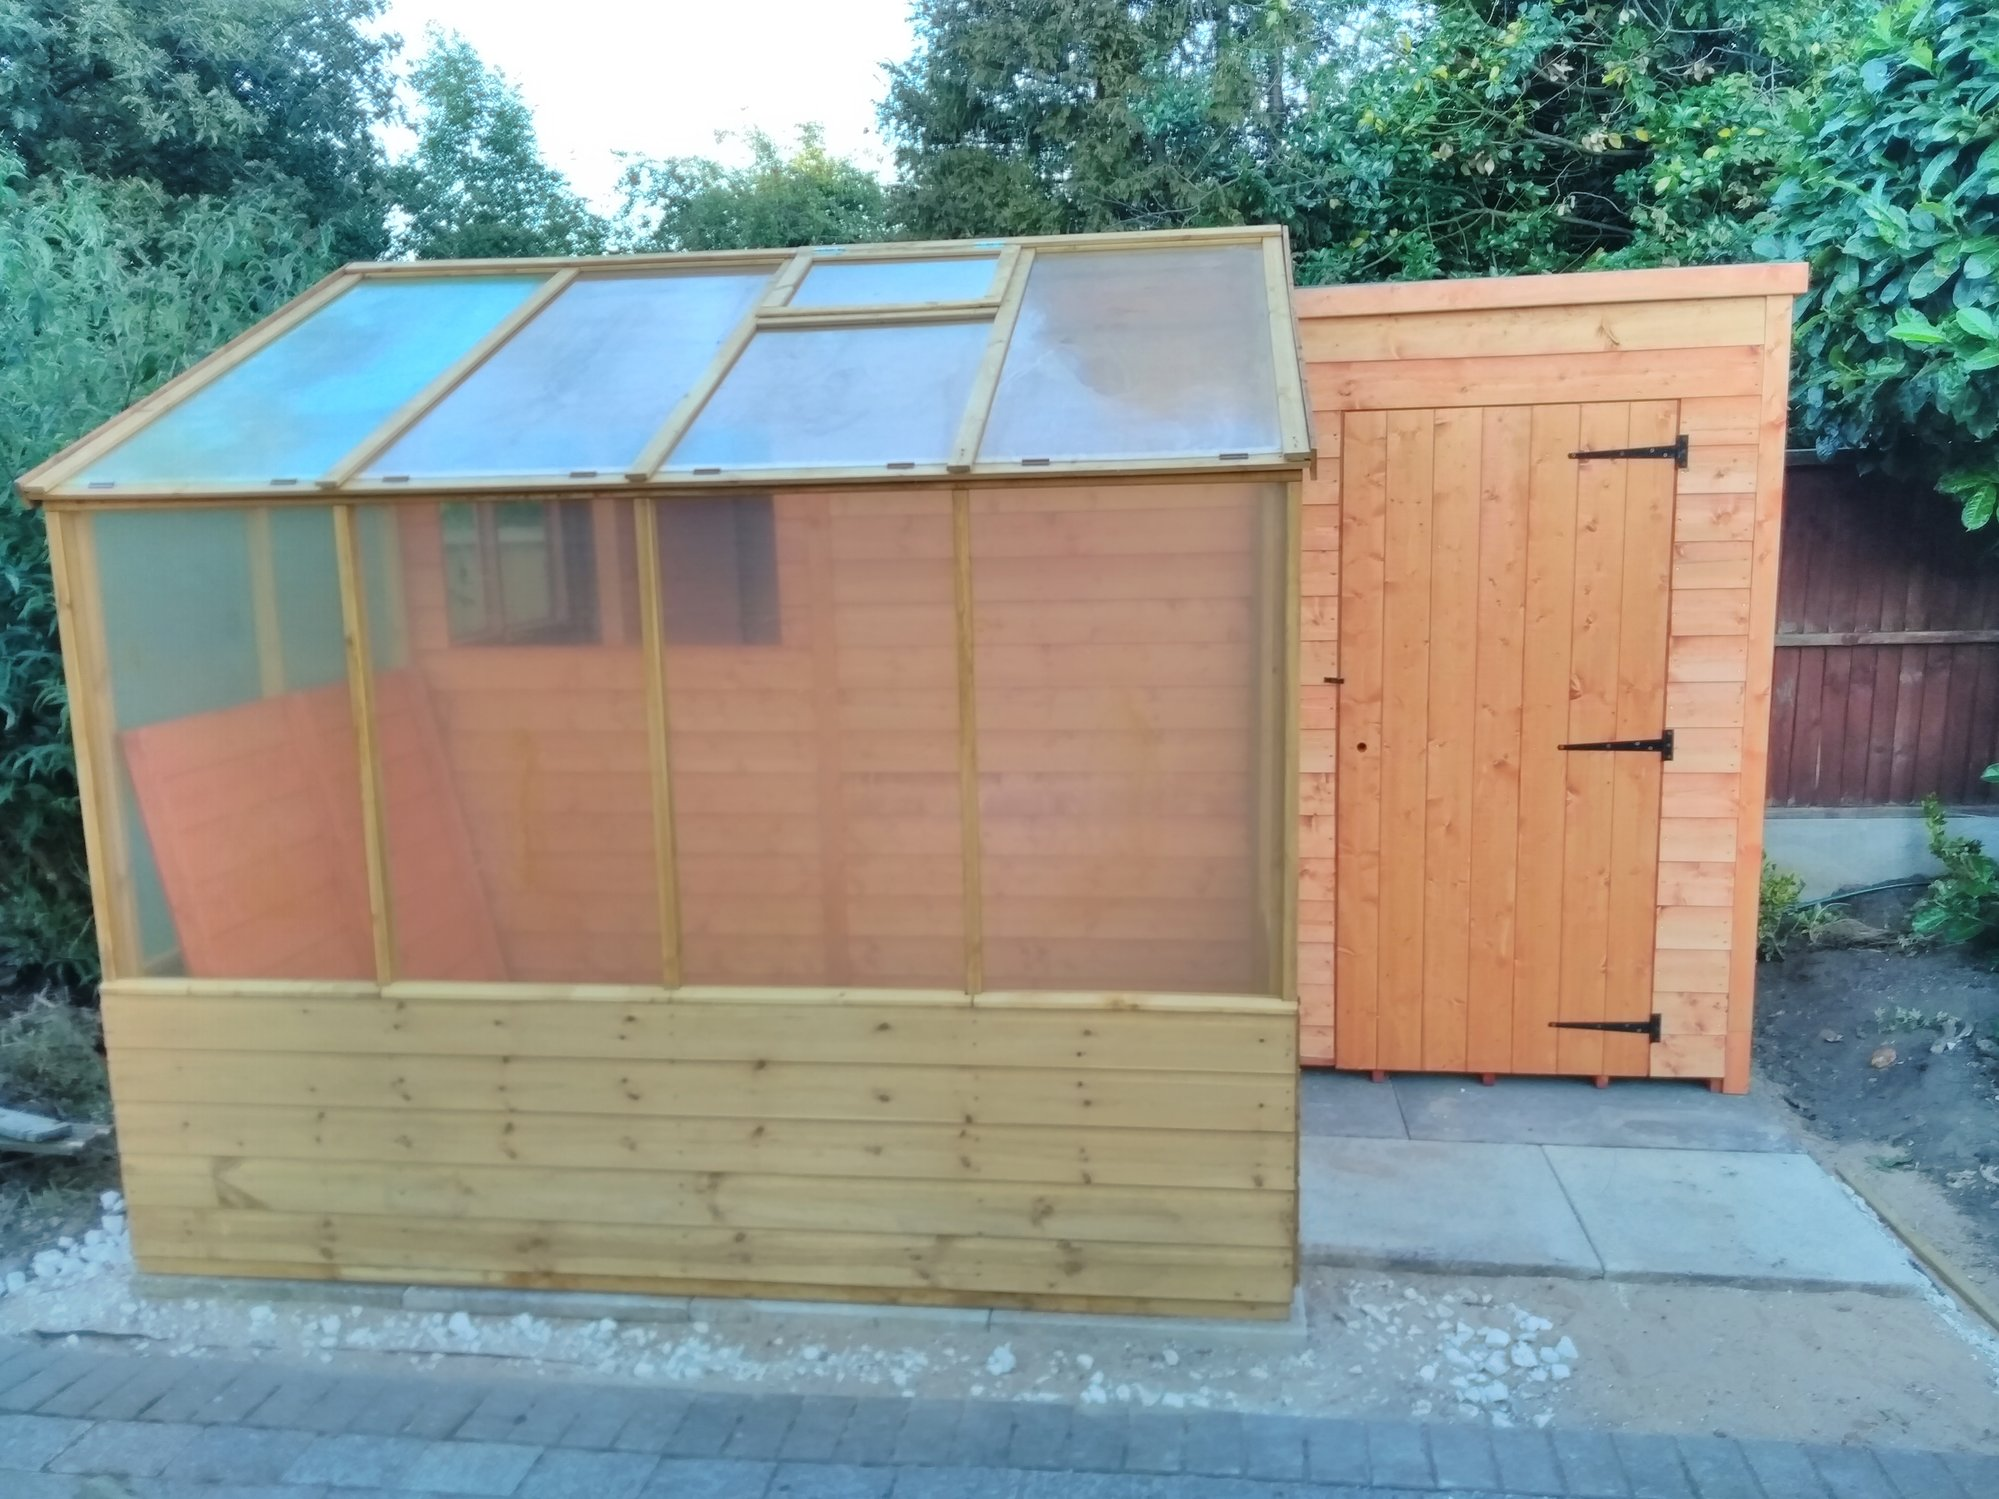 New Greenhouse Practical Advice And Shopping List Needed